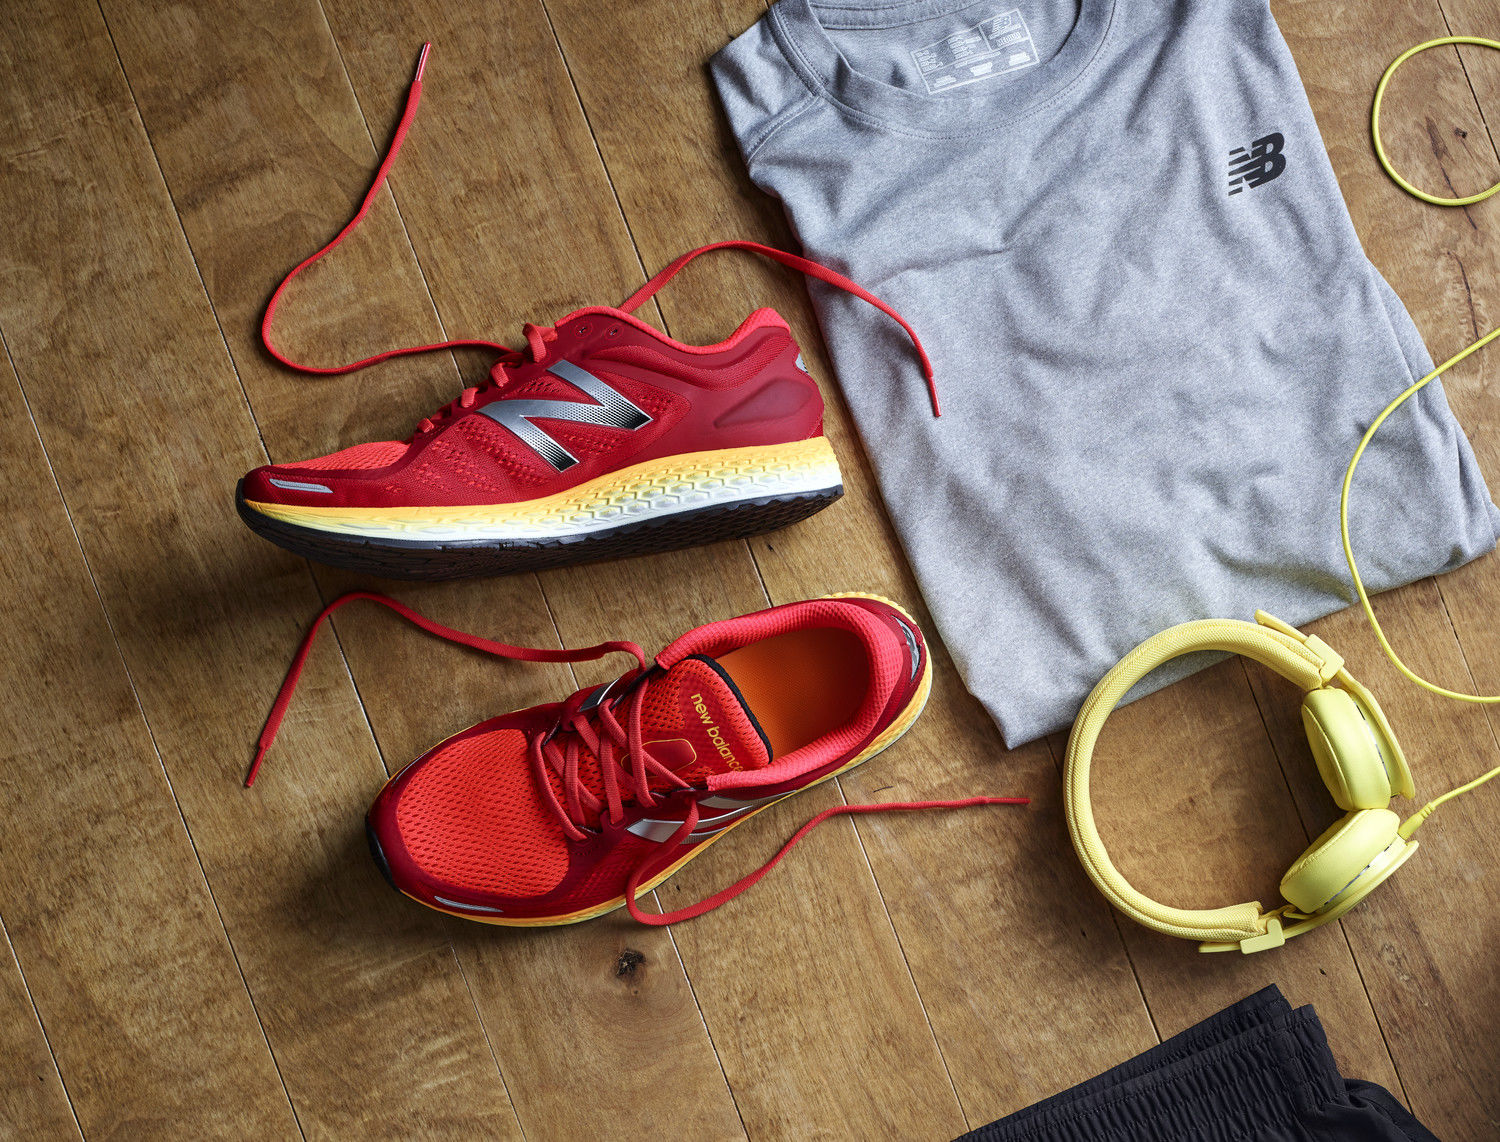 Red shoes and t-shirt